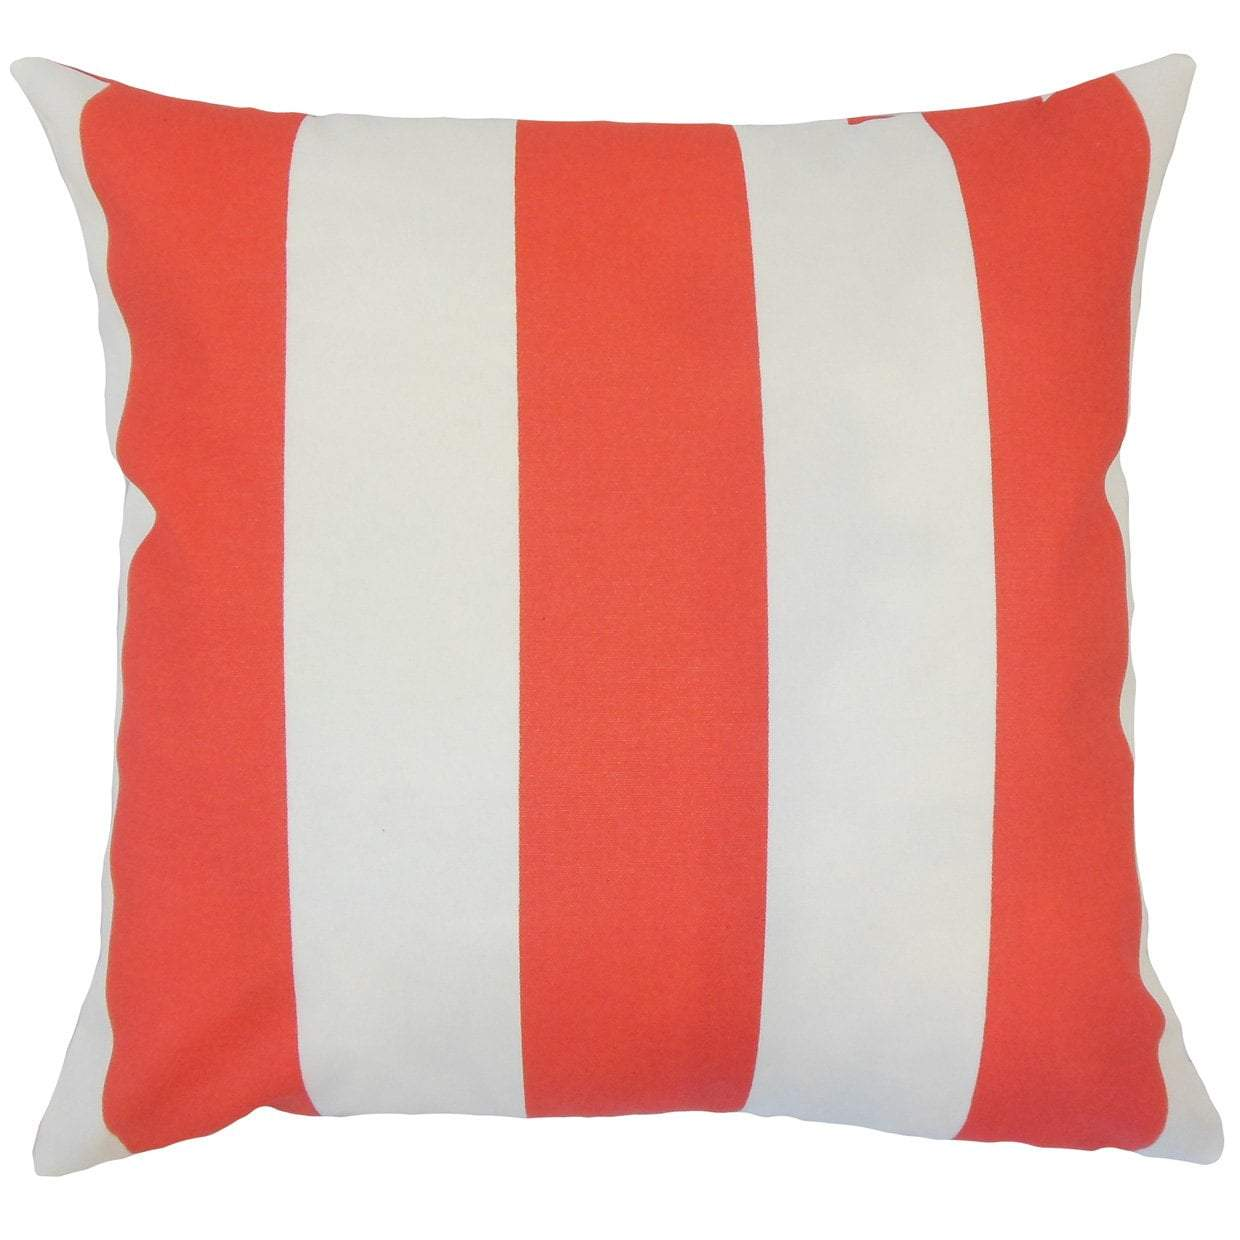 Rosenberg Throw Pillow Cover